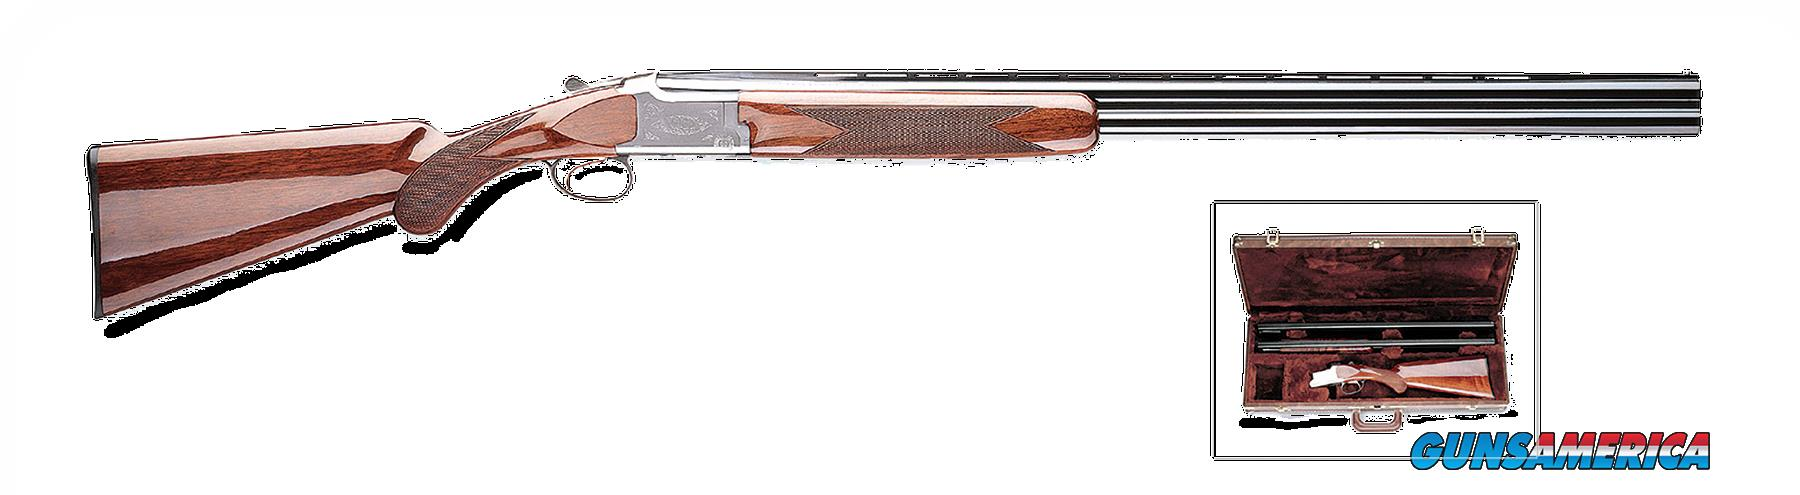 Browning 013064735 Citori Lightning Feather Combo Over/Under N/A 20/28 Gauge Blued Barrel/Silver  Guns > Rifles > B Misc Rifles